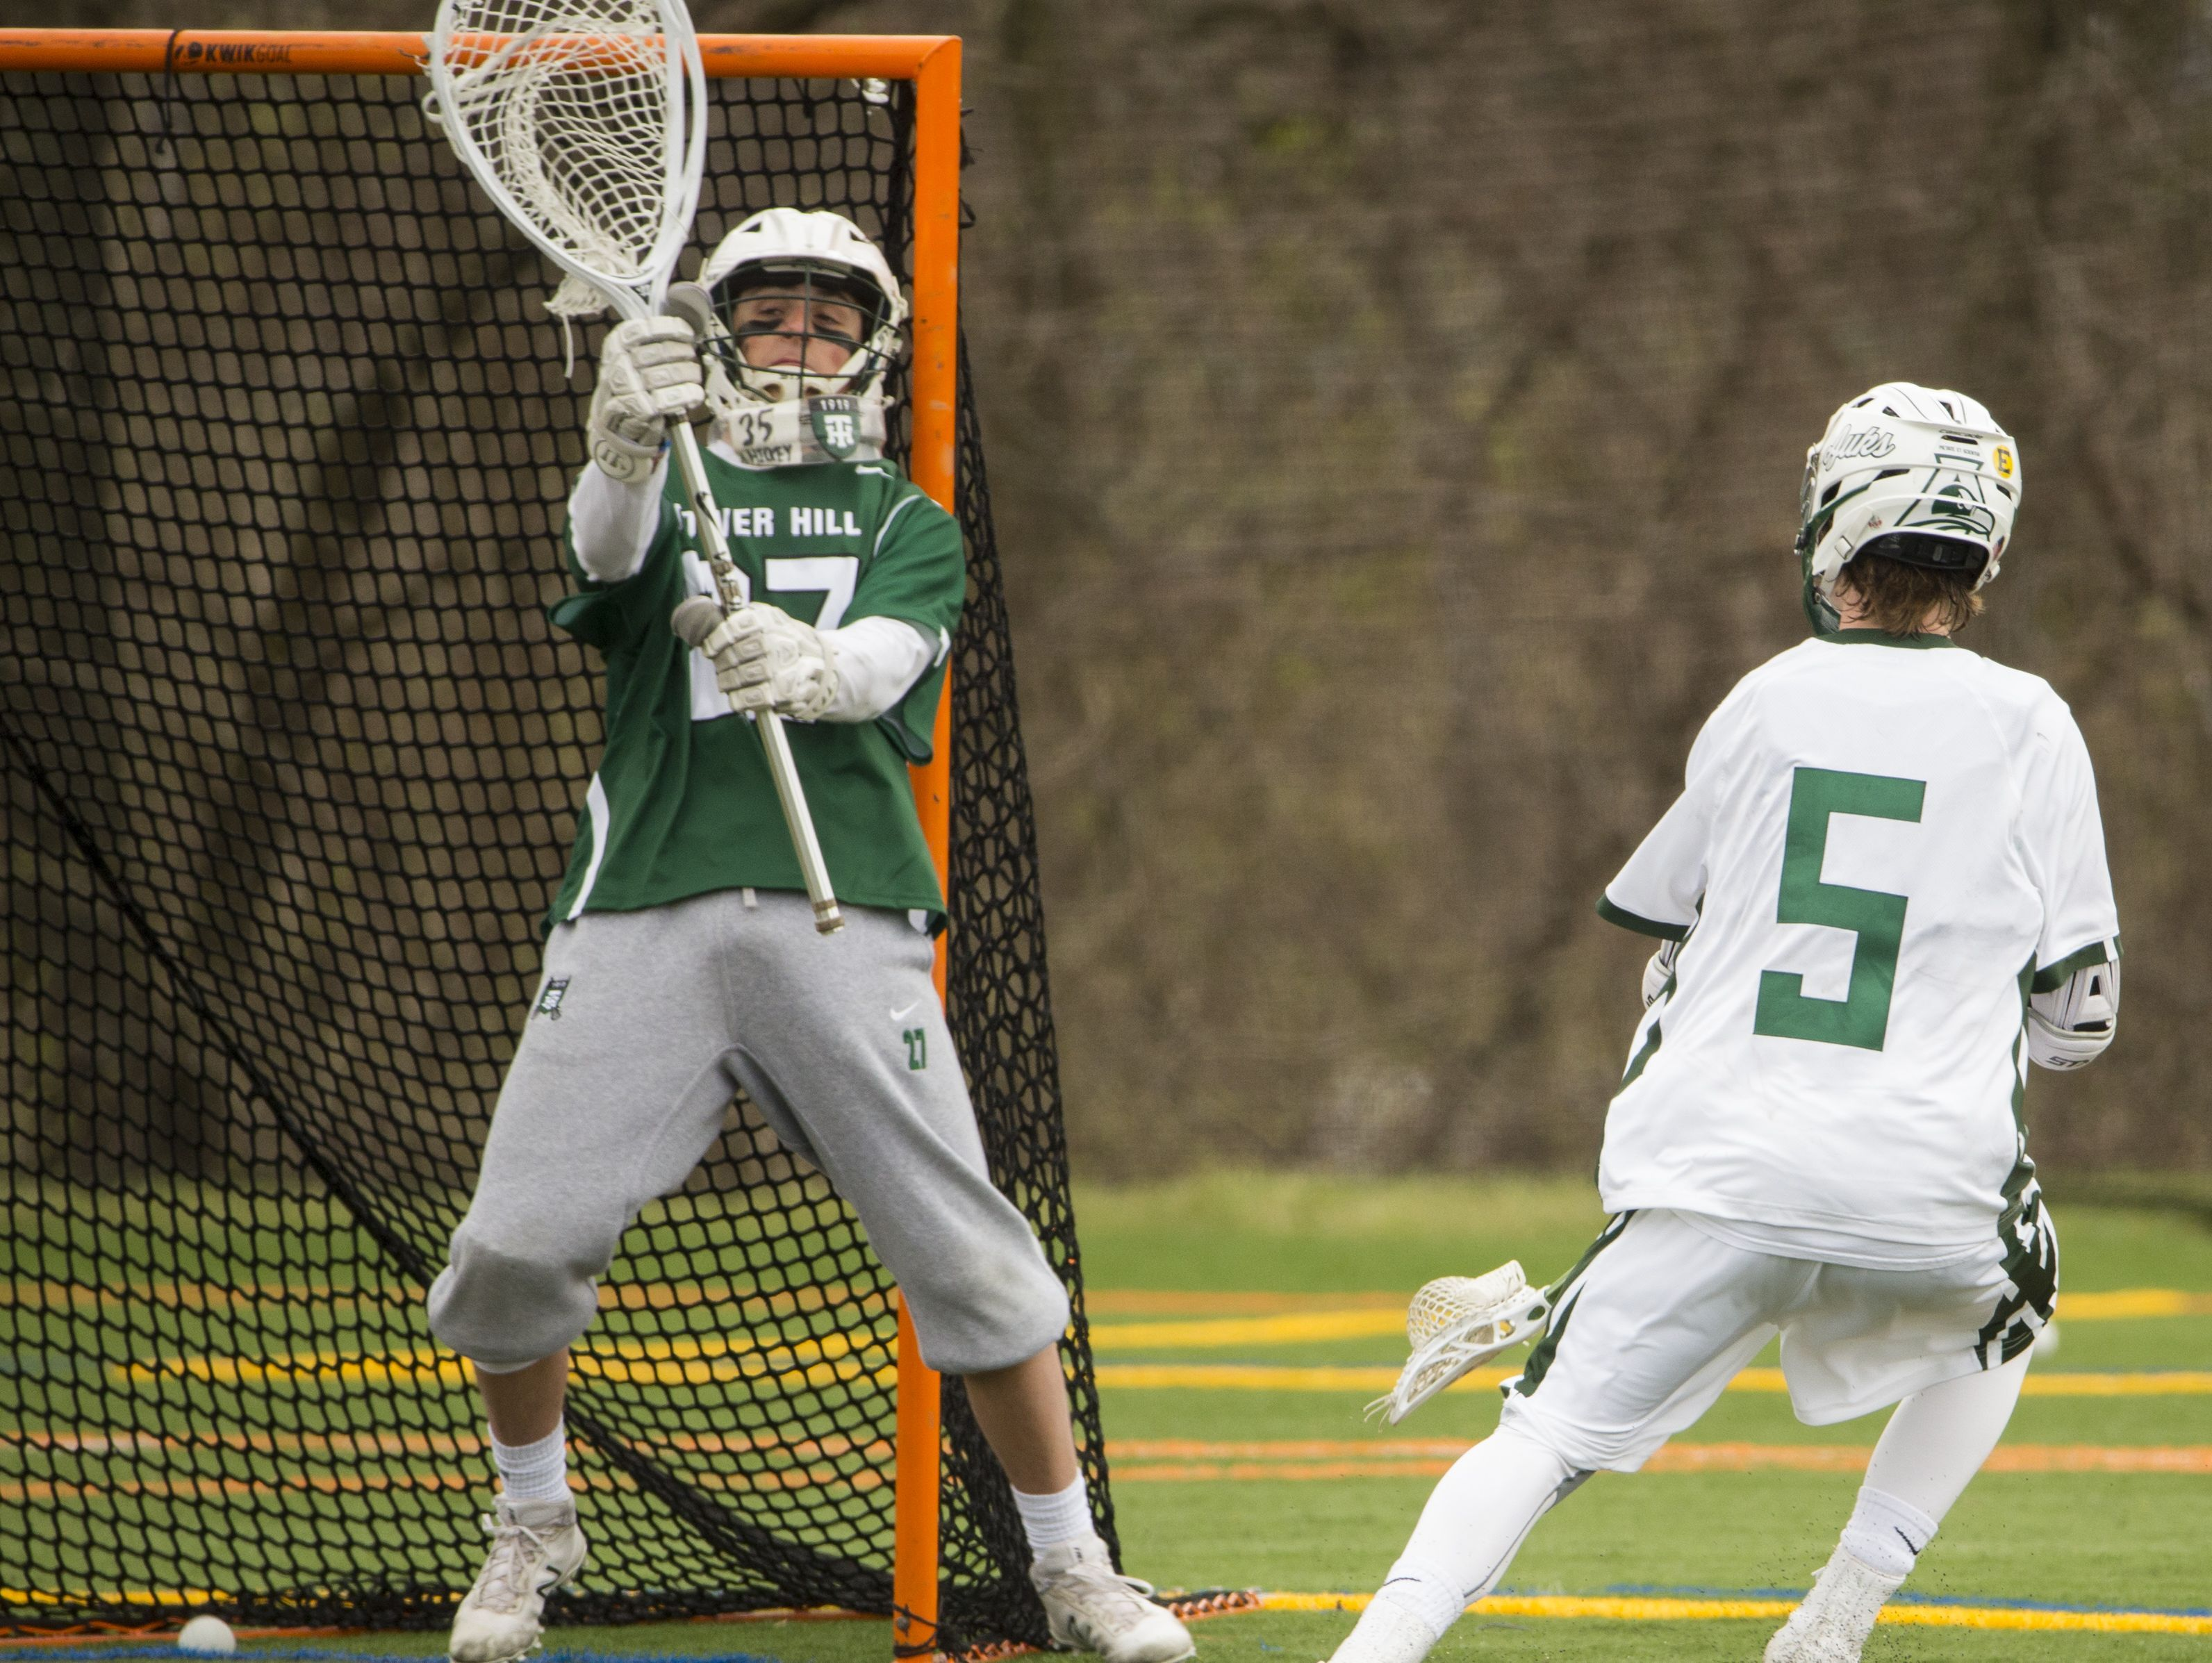 Tower Hill goalie Mike Gianforcaro can't stop a shot by Archmere's Xavier Glavin in the second half of Archmere's 12-7 win Saturday.